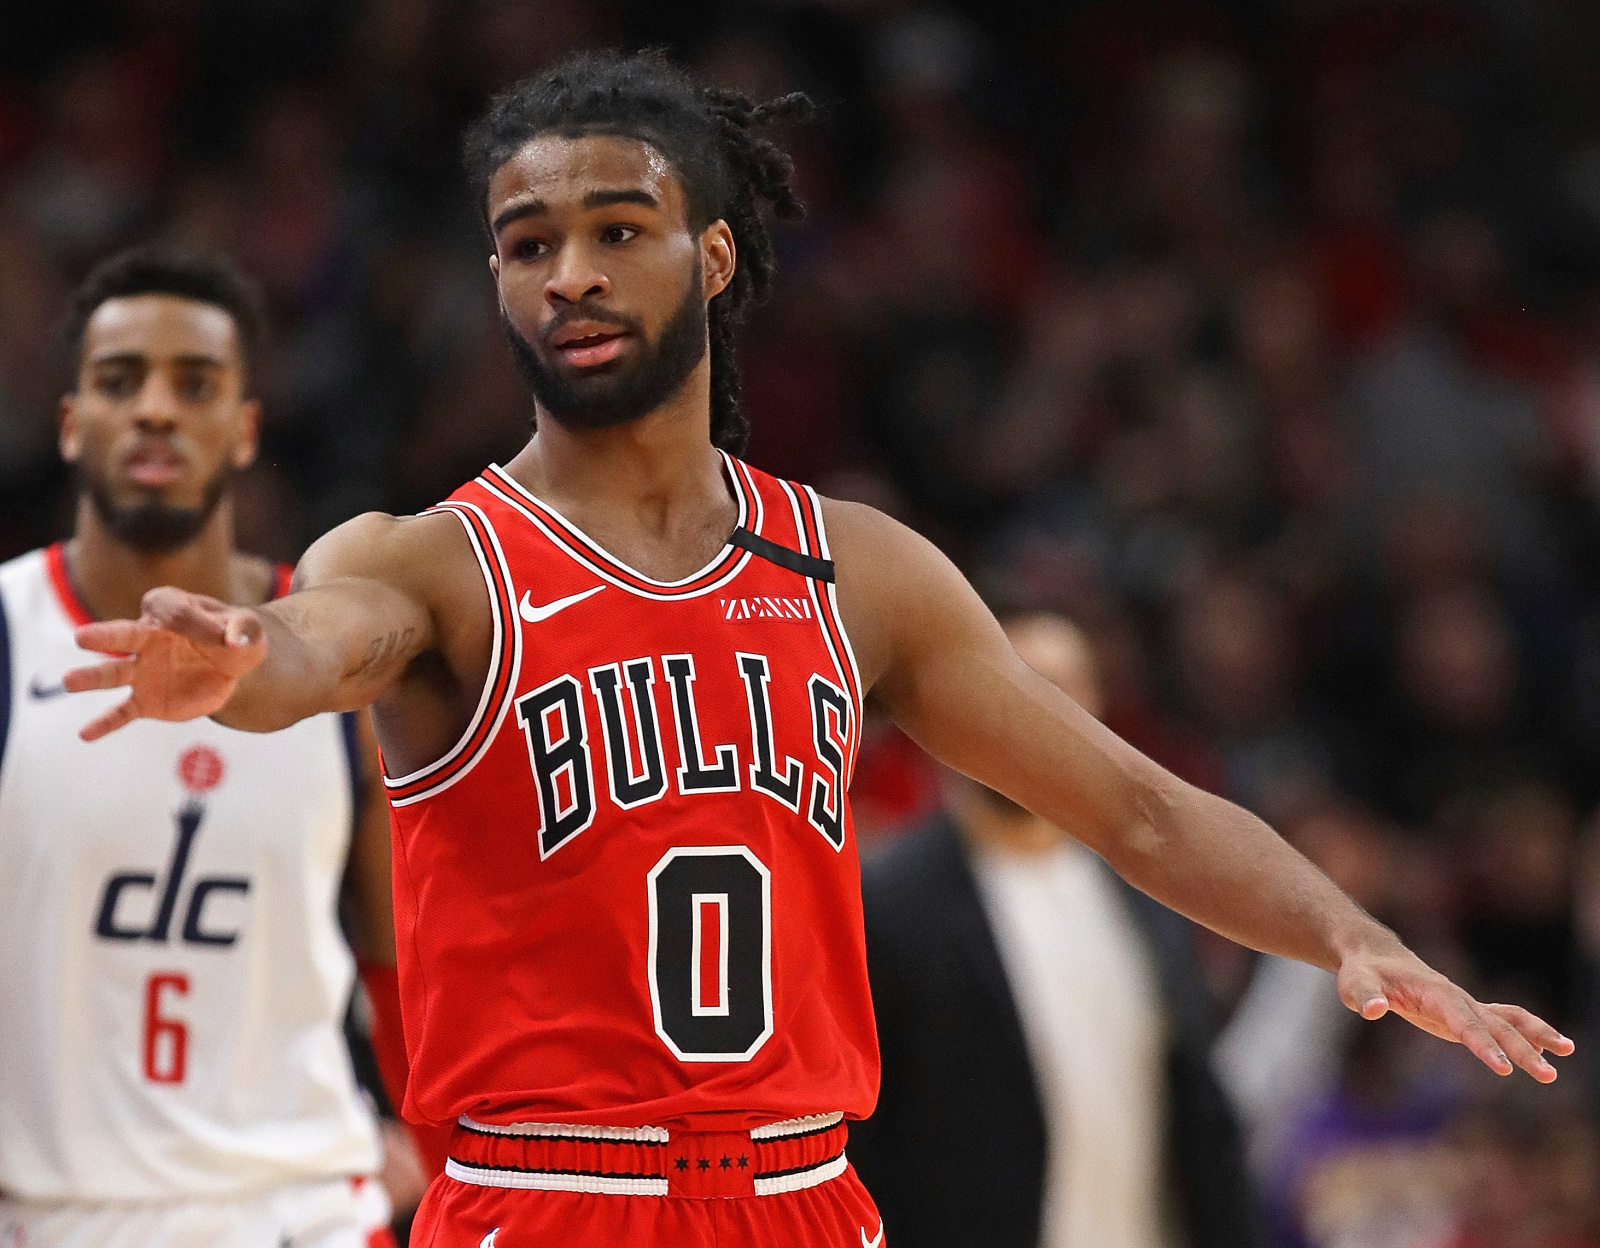 UNC Basketball: Former Tar Heel Coby White makes history in Bulls win